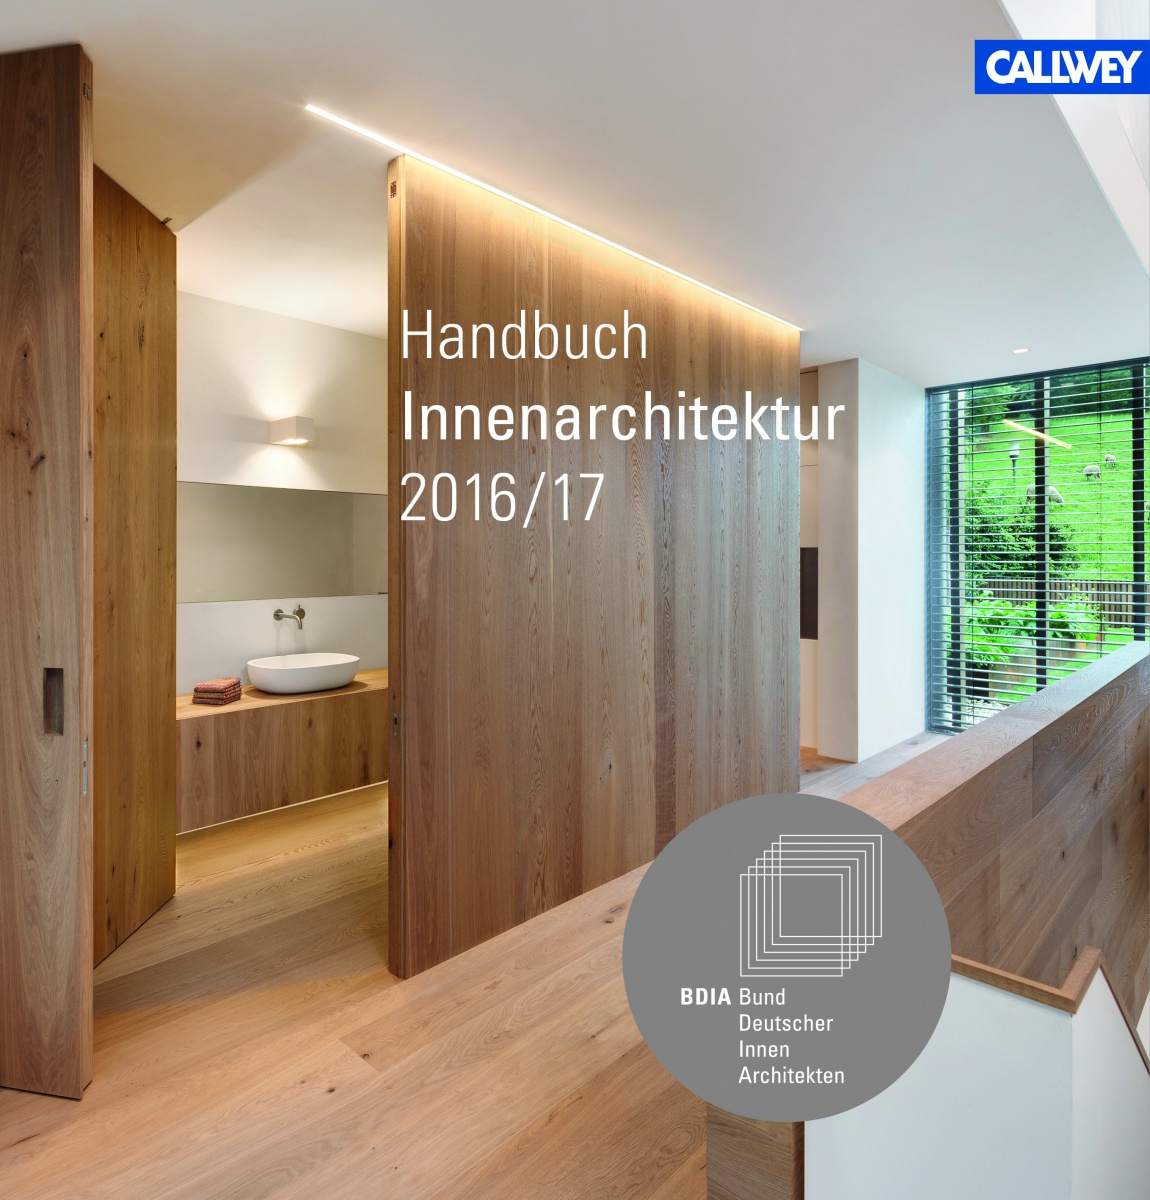 bdia handbuch innenarchitektur 2016 17 erschienen bdia. Black Bedroom Furniture Sets. Home Design Ideas